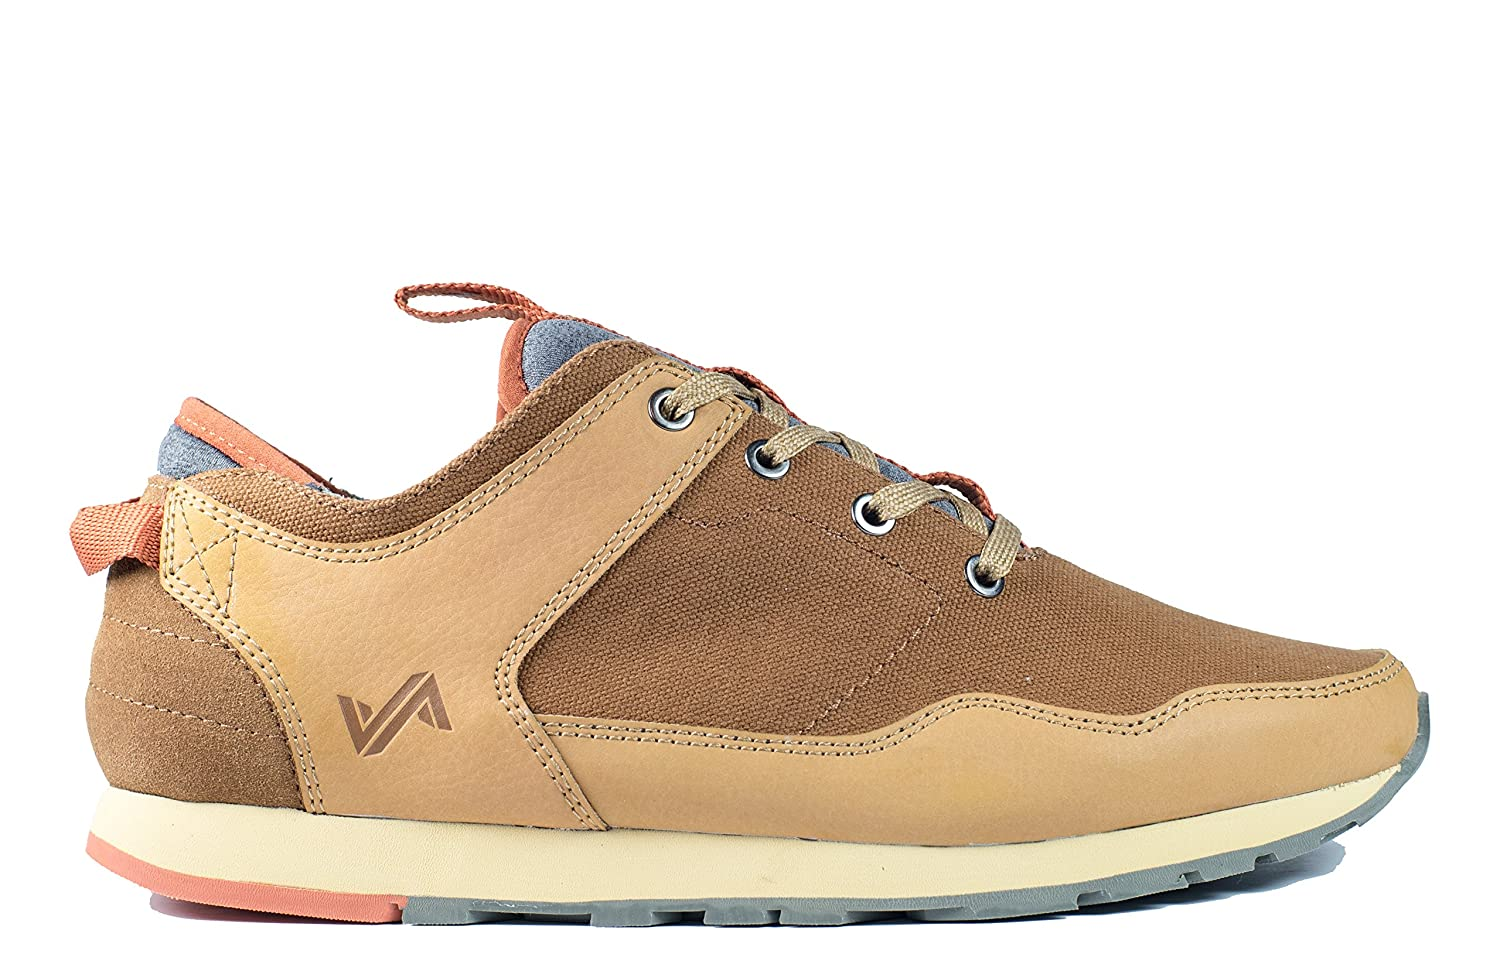 Forsake Lewis - Men's Casual Leather/Canvas Sneaker 9 M US|Tan